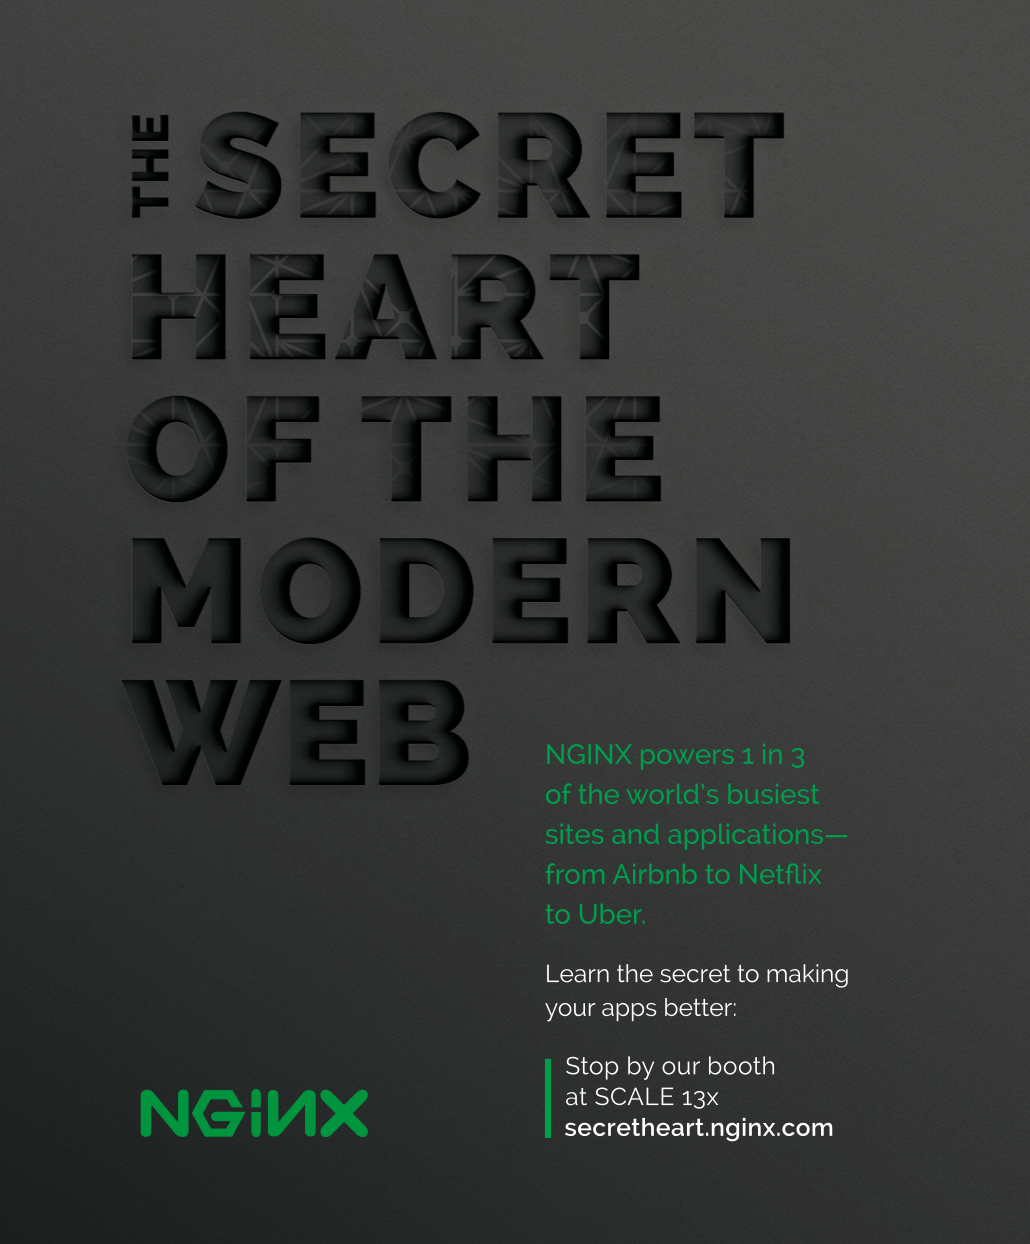 NGINX is the secret heart of the modern web